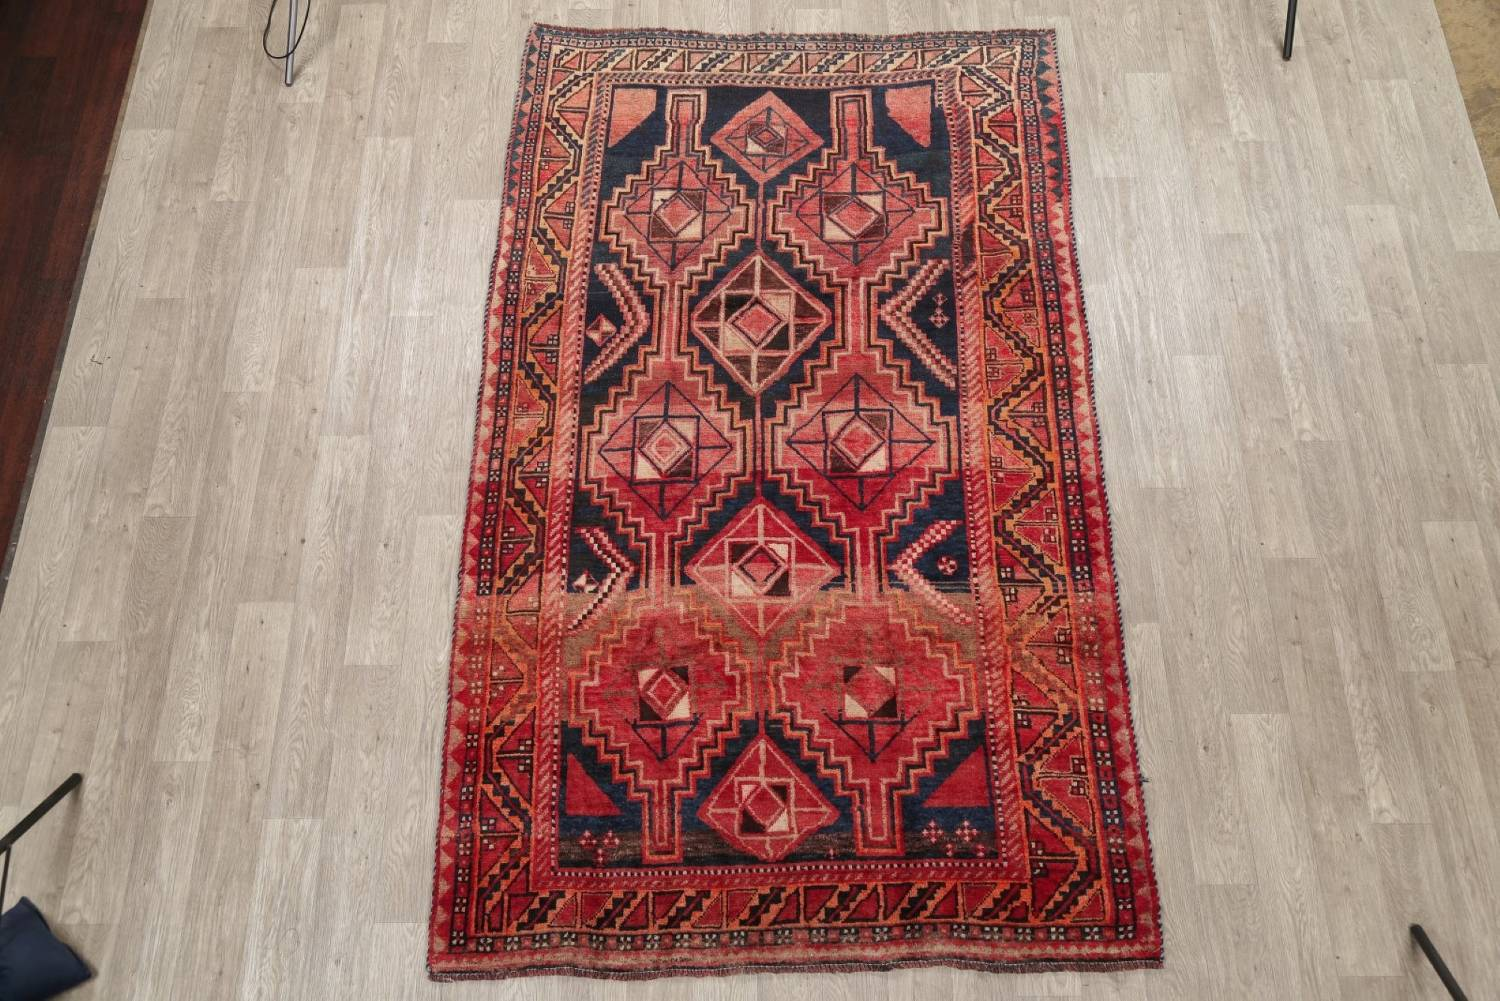 One of a Kind Antique Geometric Lori Persian Hand-Knotted 5x9 Wool Area Rug image 2